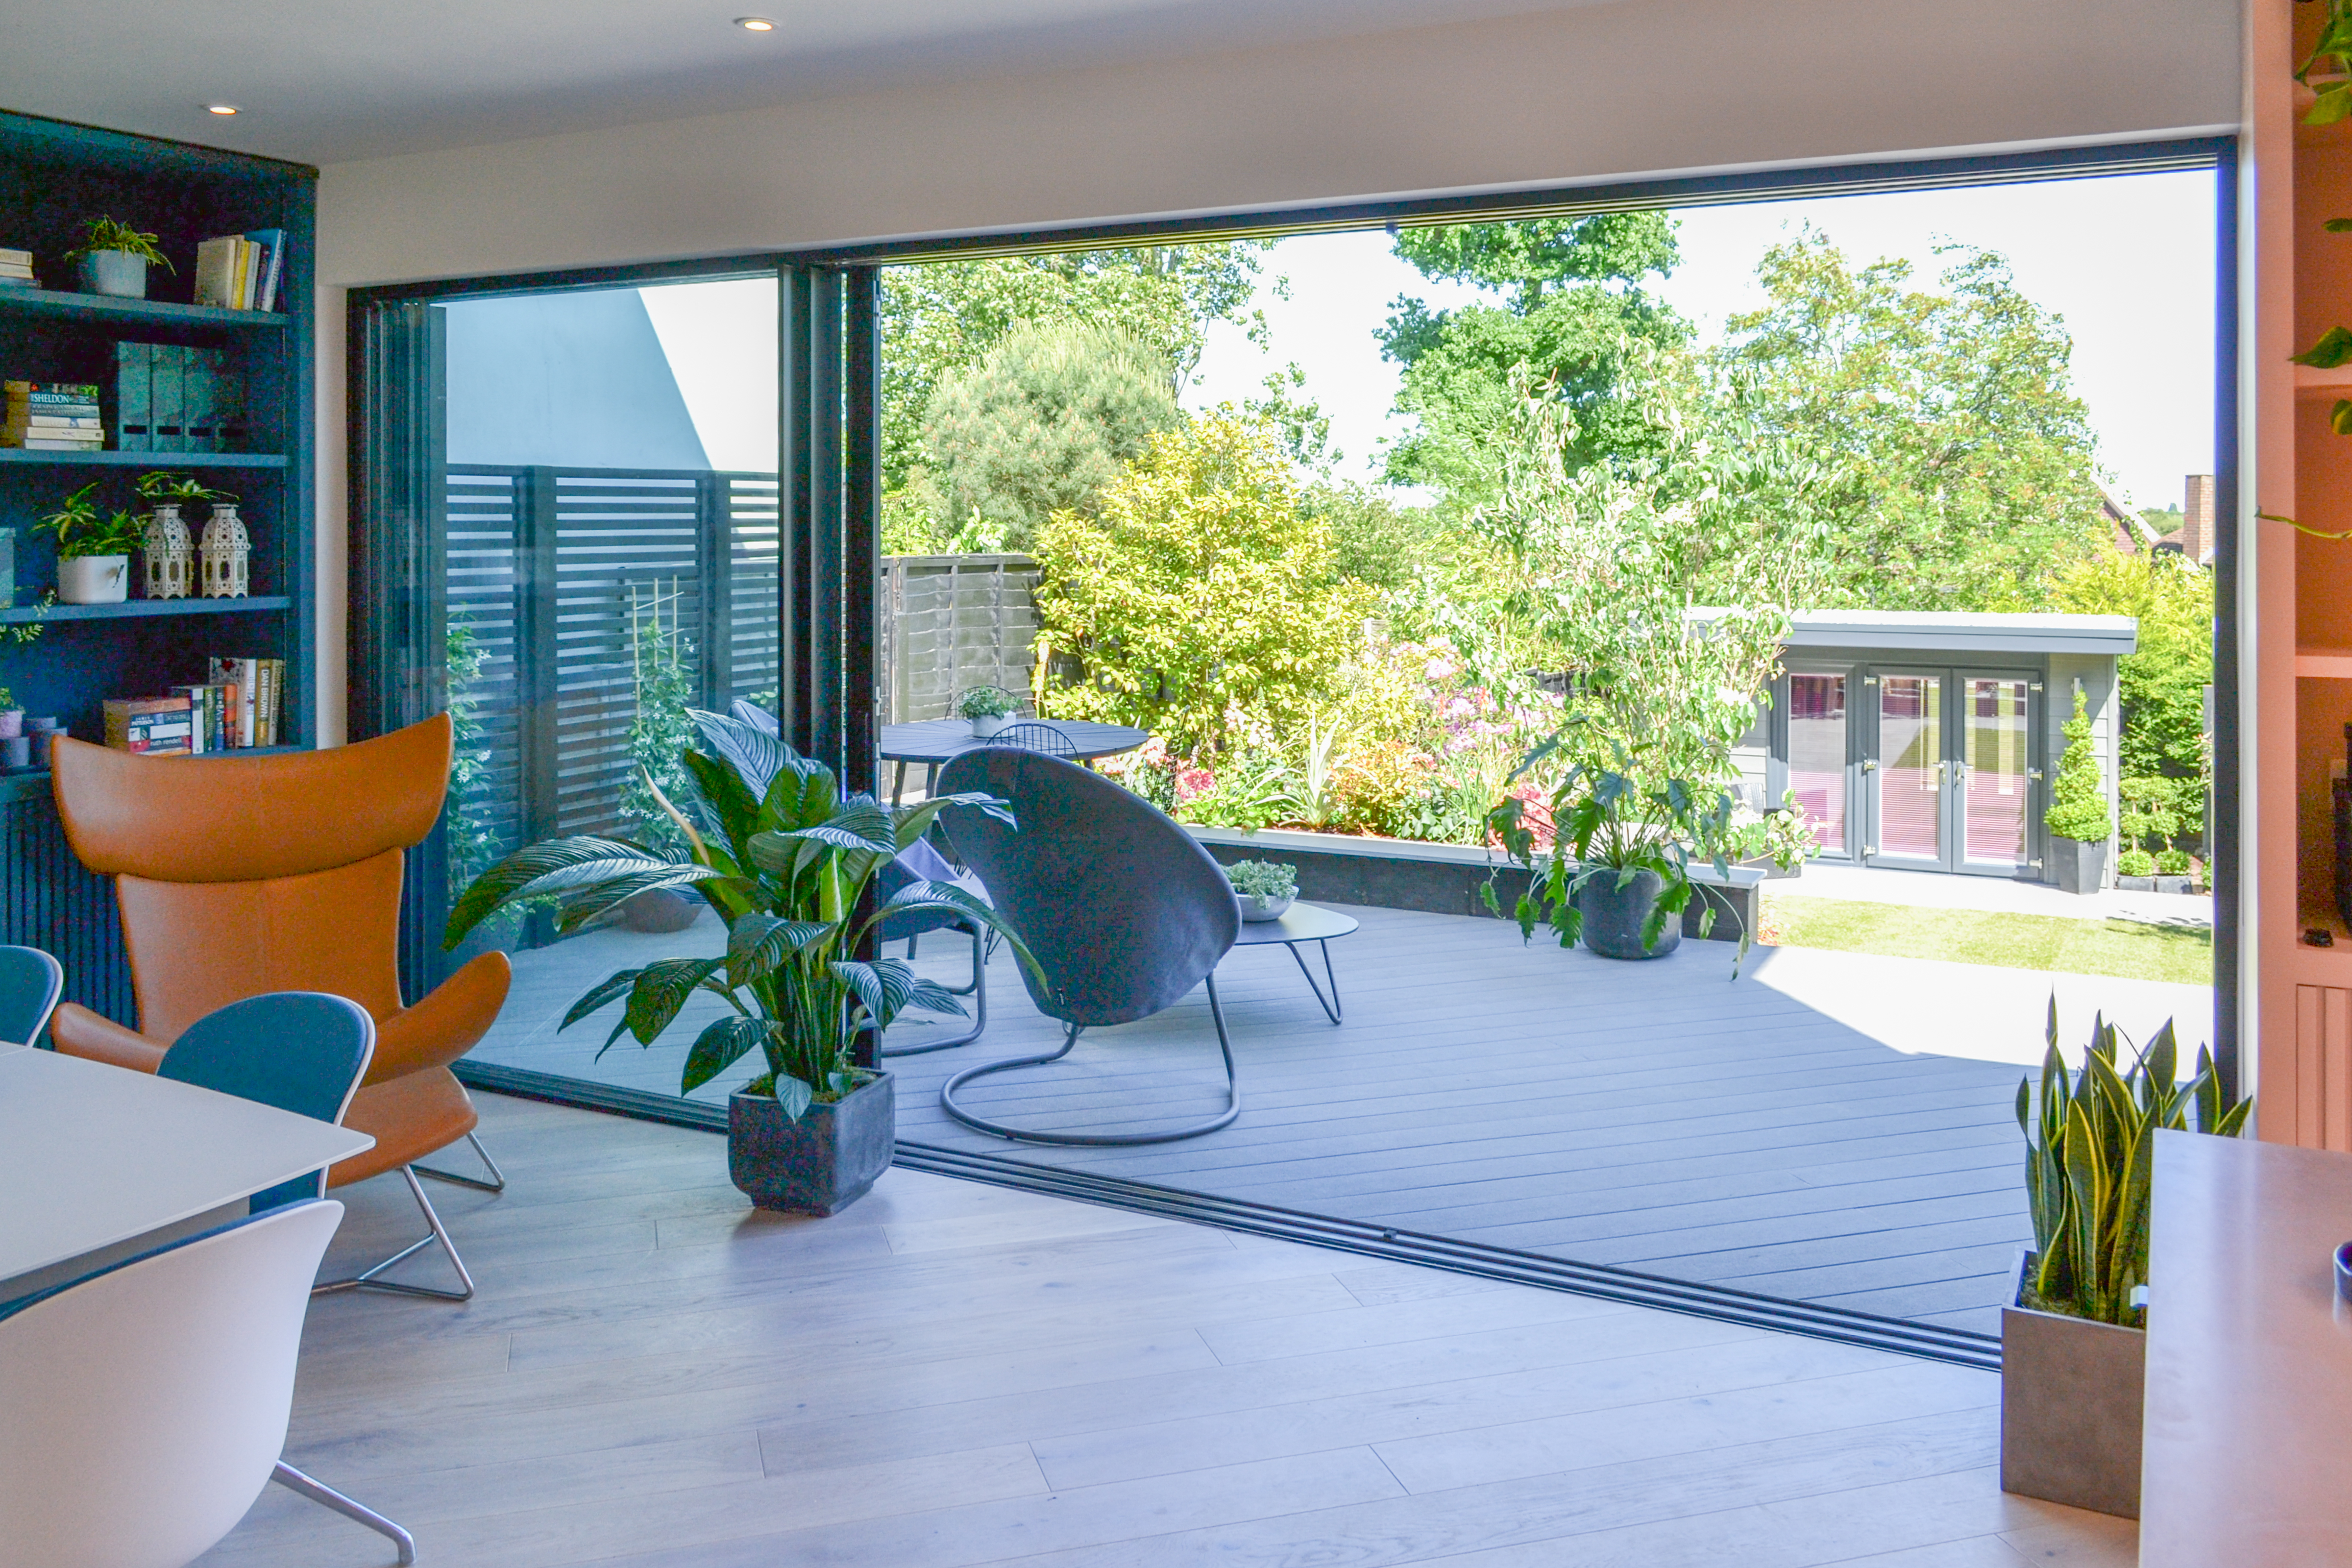 Perspective view of the large sliding doors and spacious rear patio.